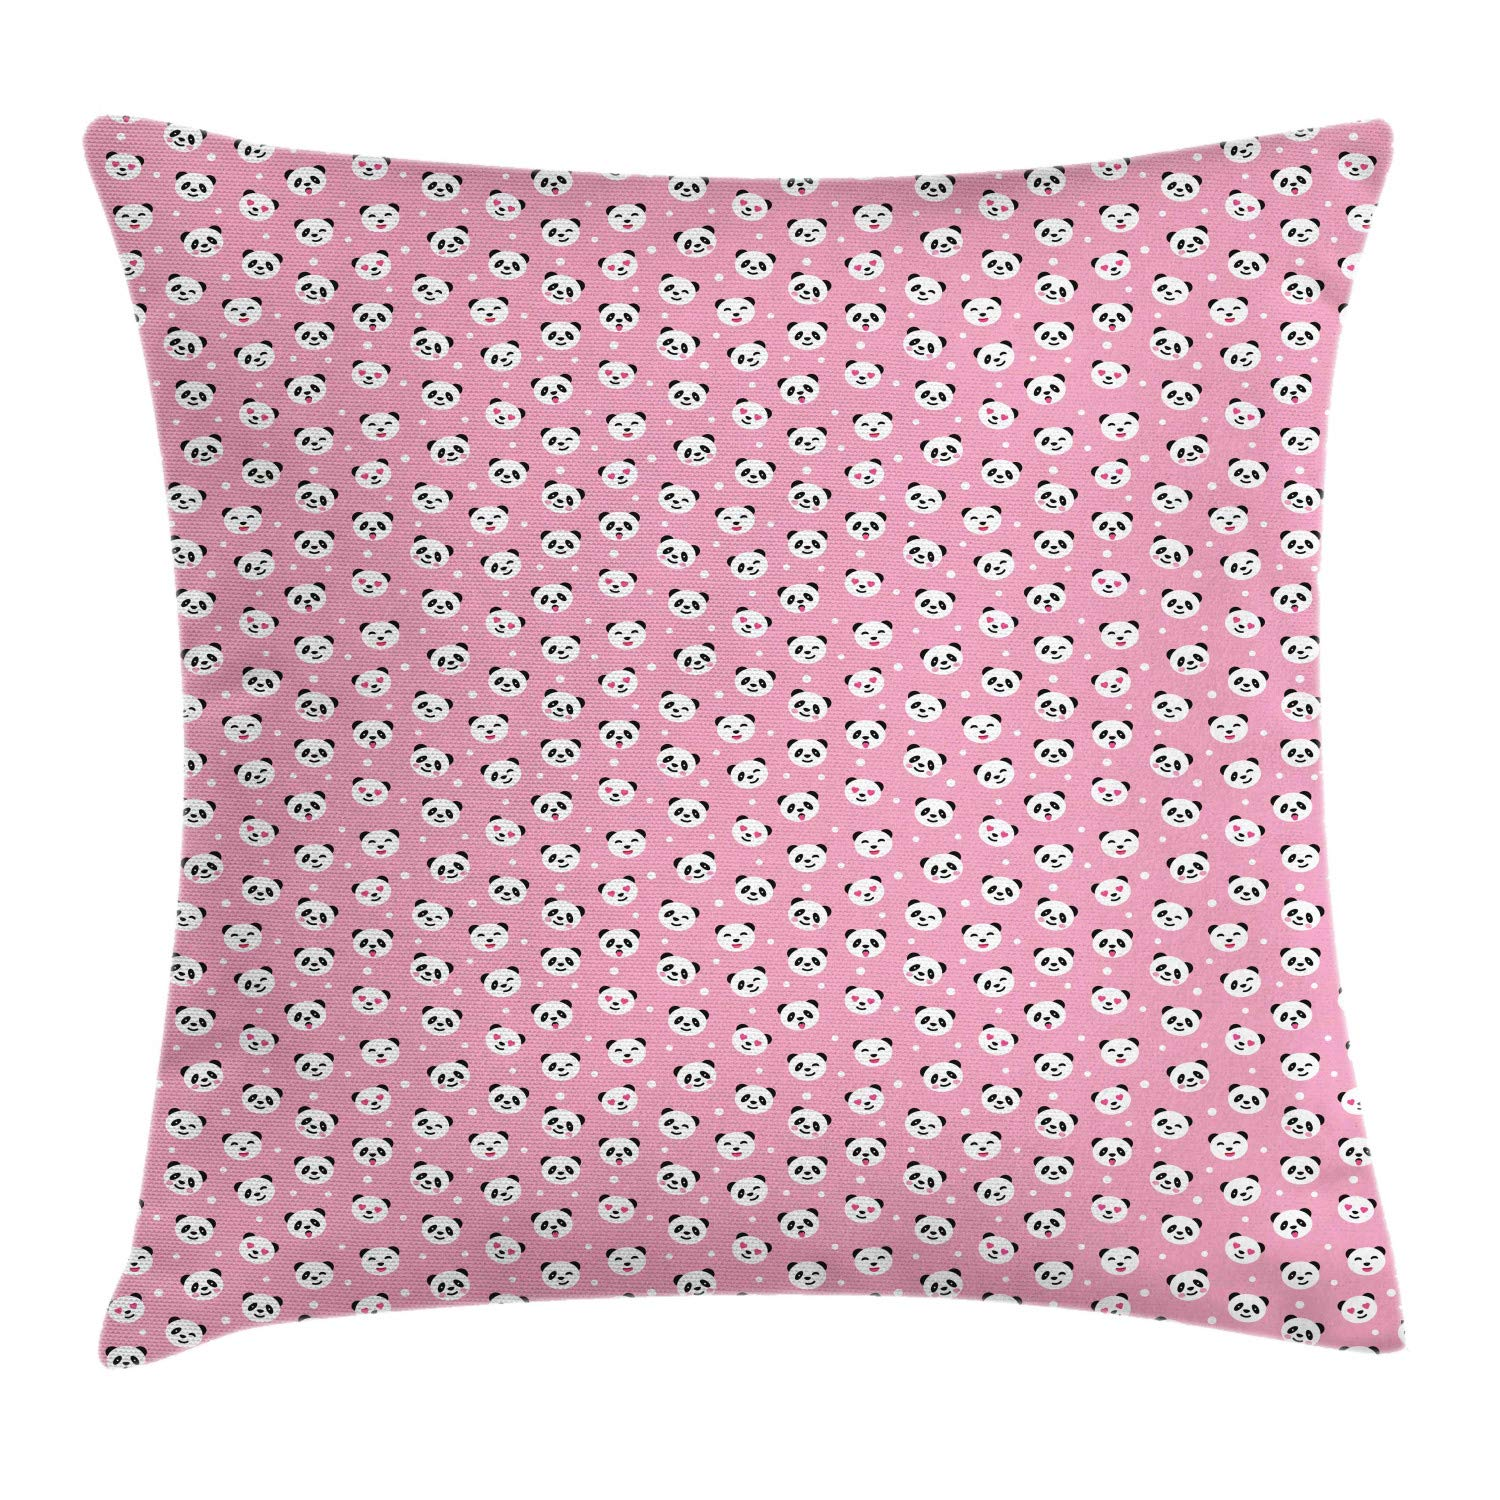 Lunarable Panda Throw Pillow Cushion Cover, Continuous Nursery Pattern of Animal with Funny Expressions Repeated, Decorative Square Accent Pillow Case, 24'' X 24'', Pink Charcoal Grey White by Lunarable